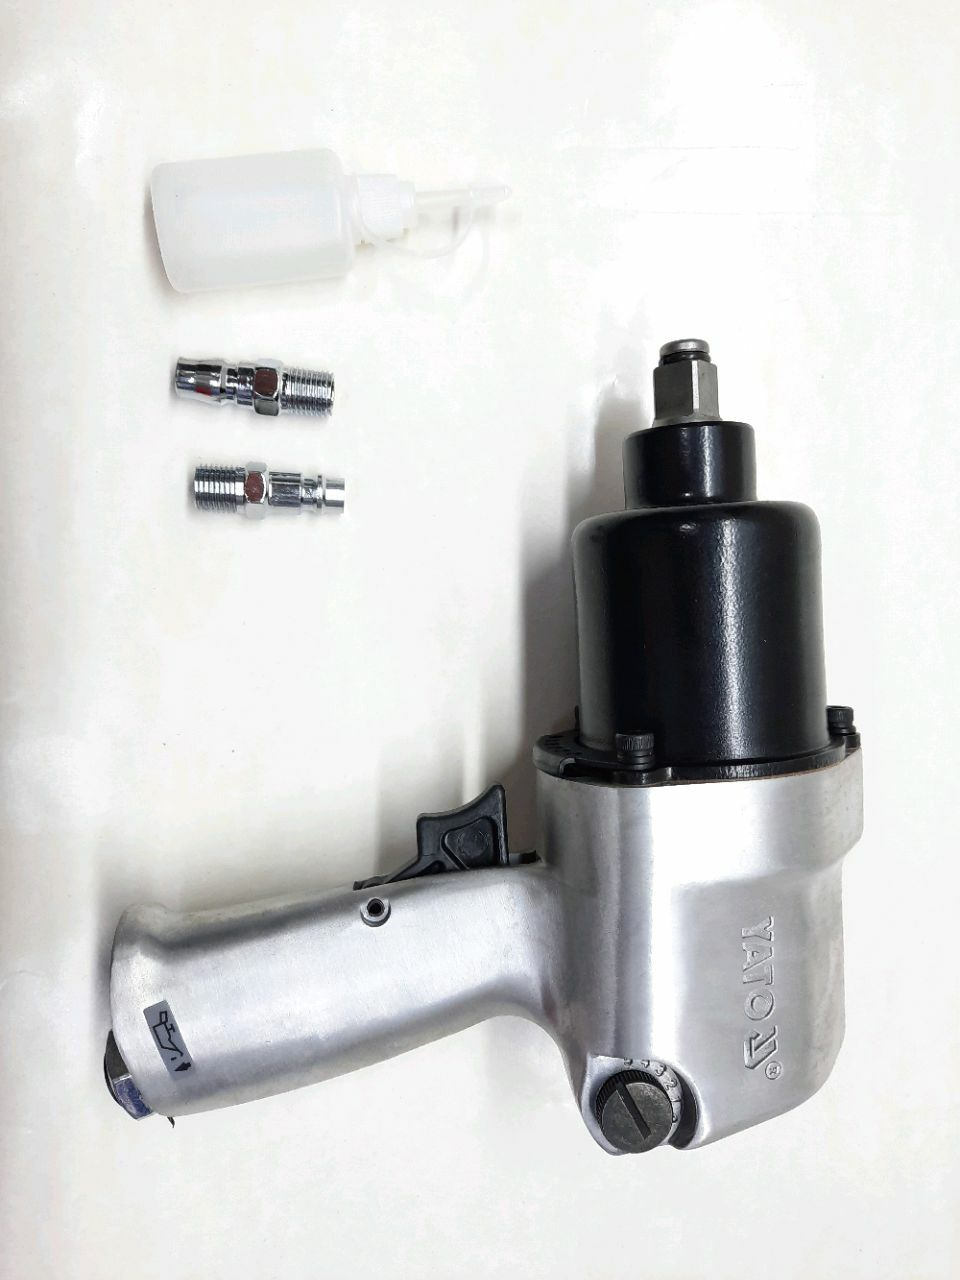 Pistol pneumatic 1/2 1000Nm